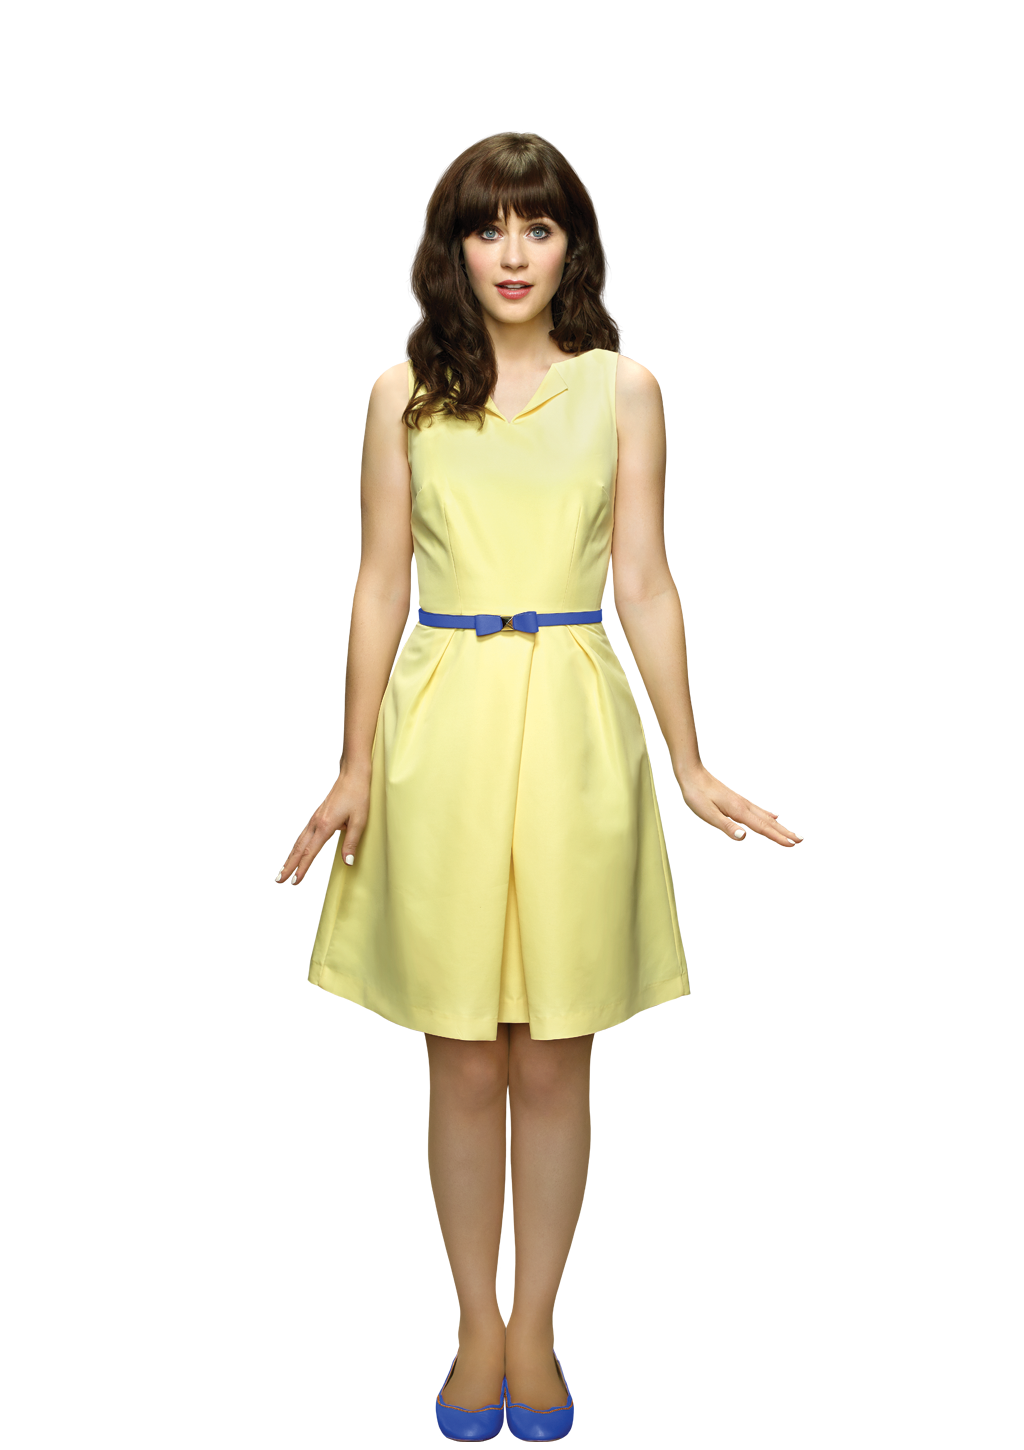 Teen girl png. Download pic hq image